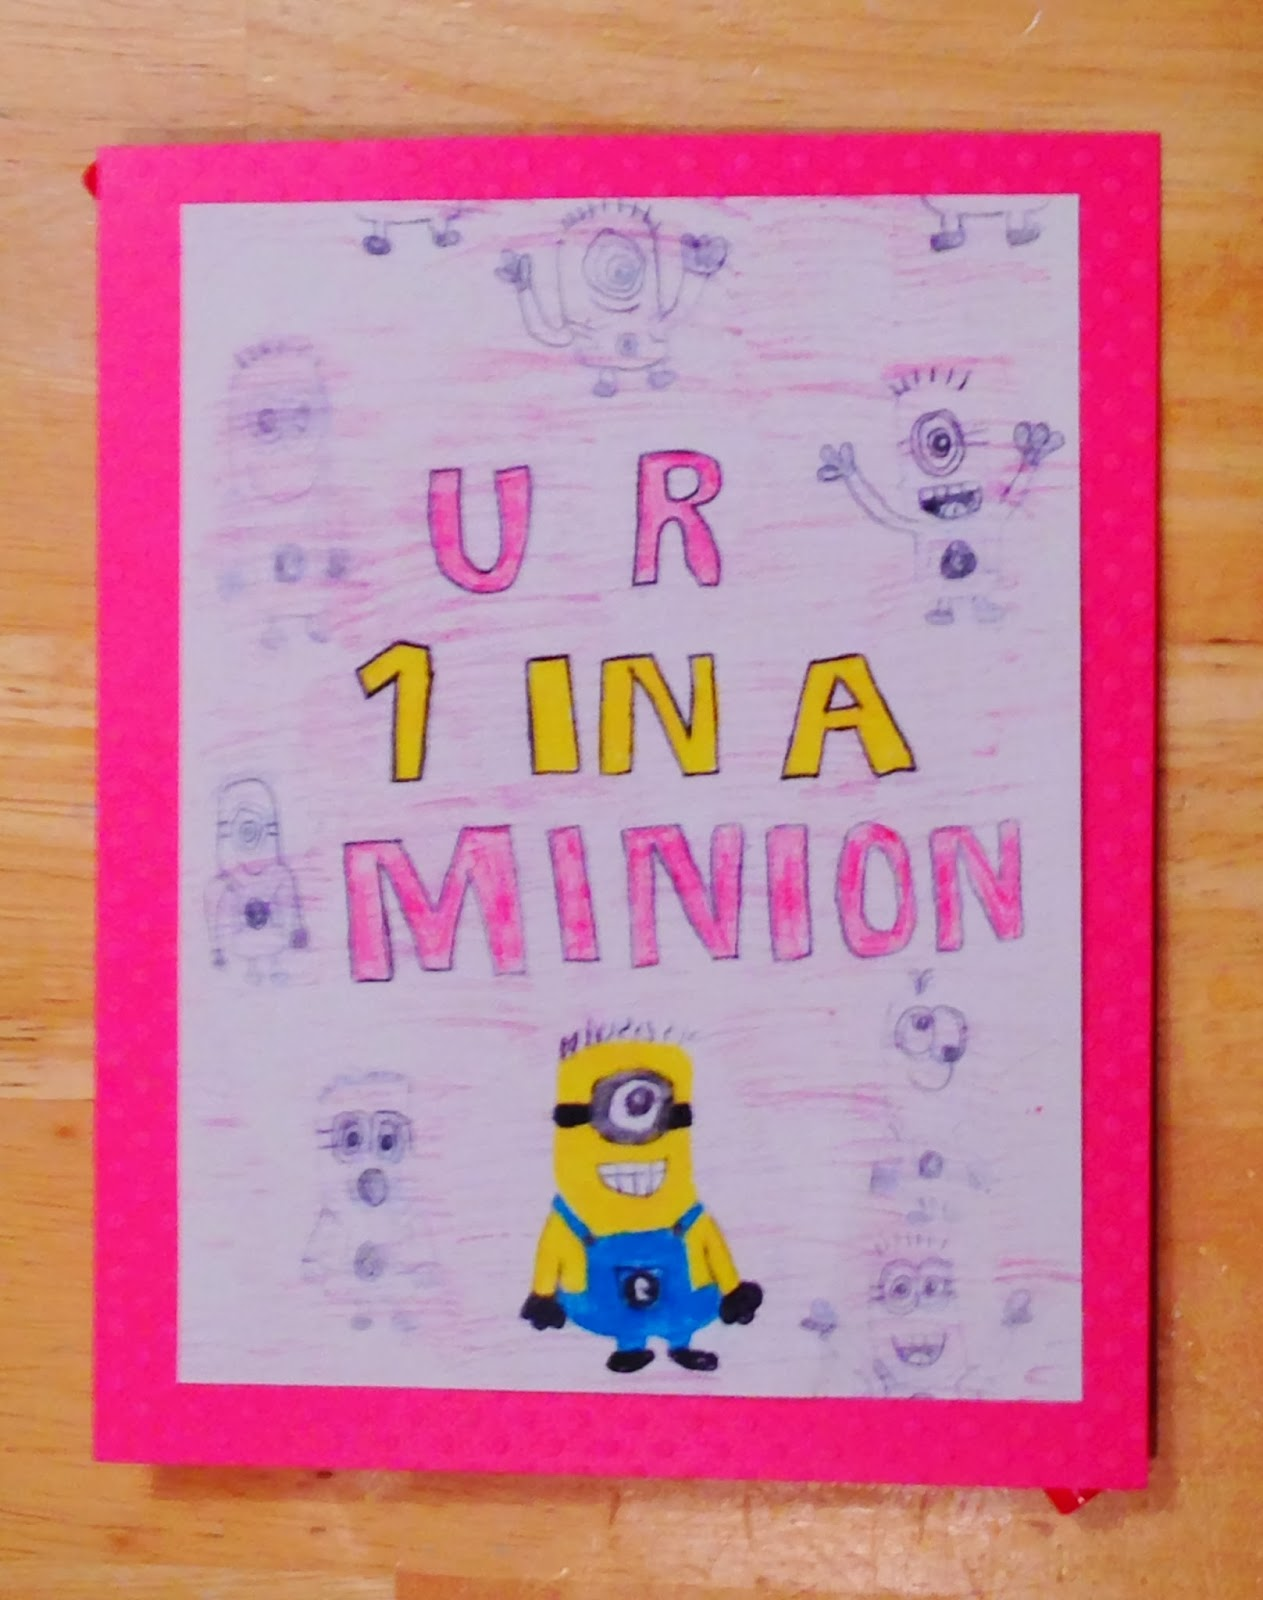 Scrapbook paper art projects -  Scrapbook Paper But You Can Use Construction Paper Or Anything Really Glue Dots Or A Glue Stick School Glue Etc And A Paper Cutter Or Scissors